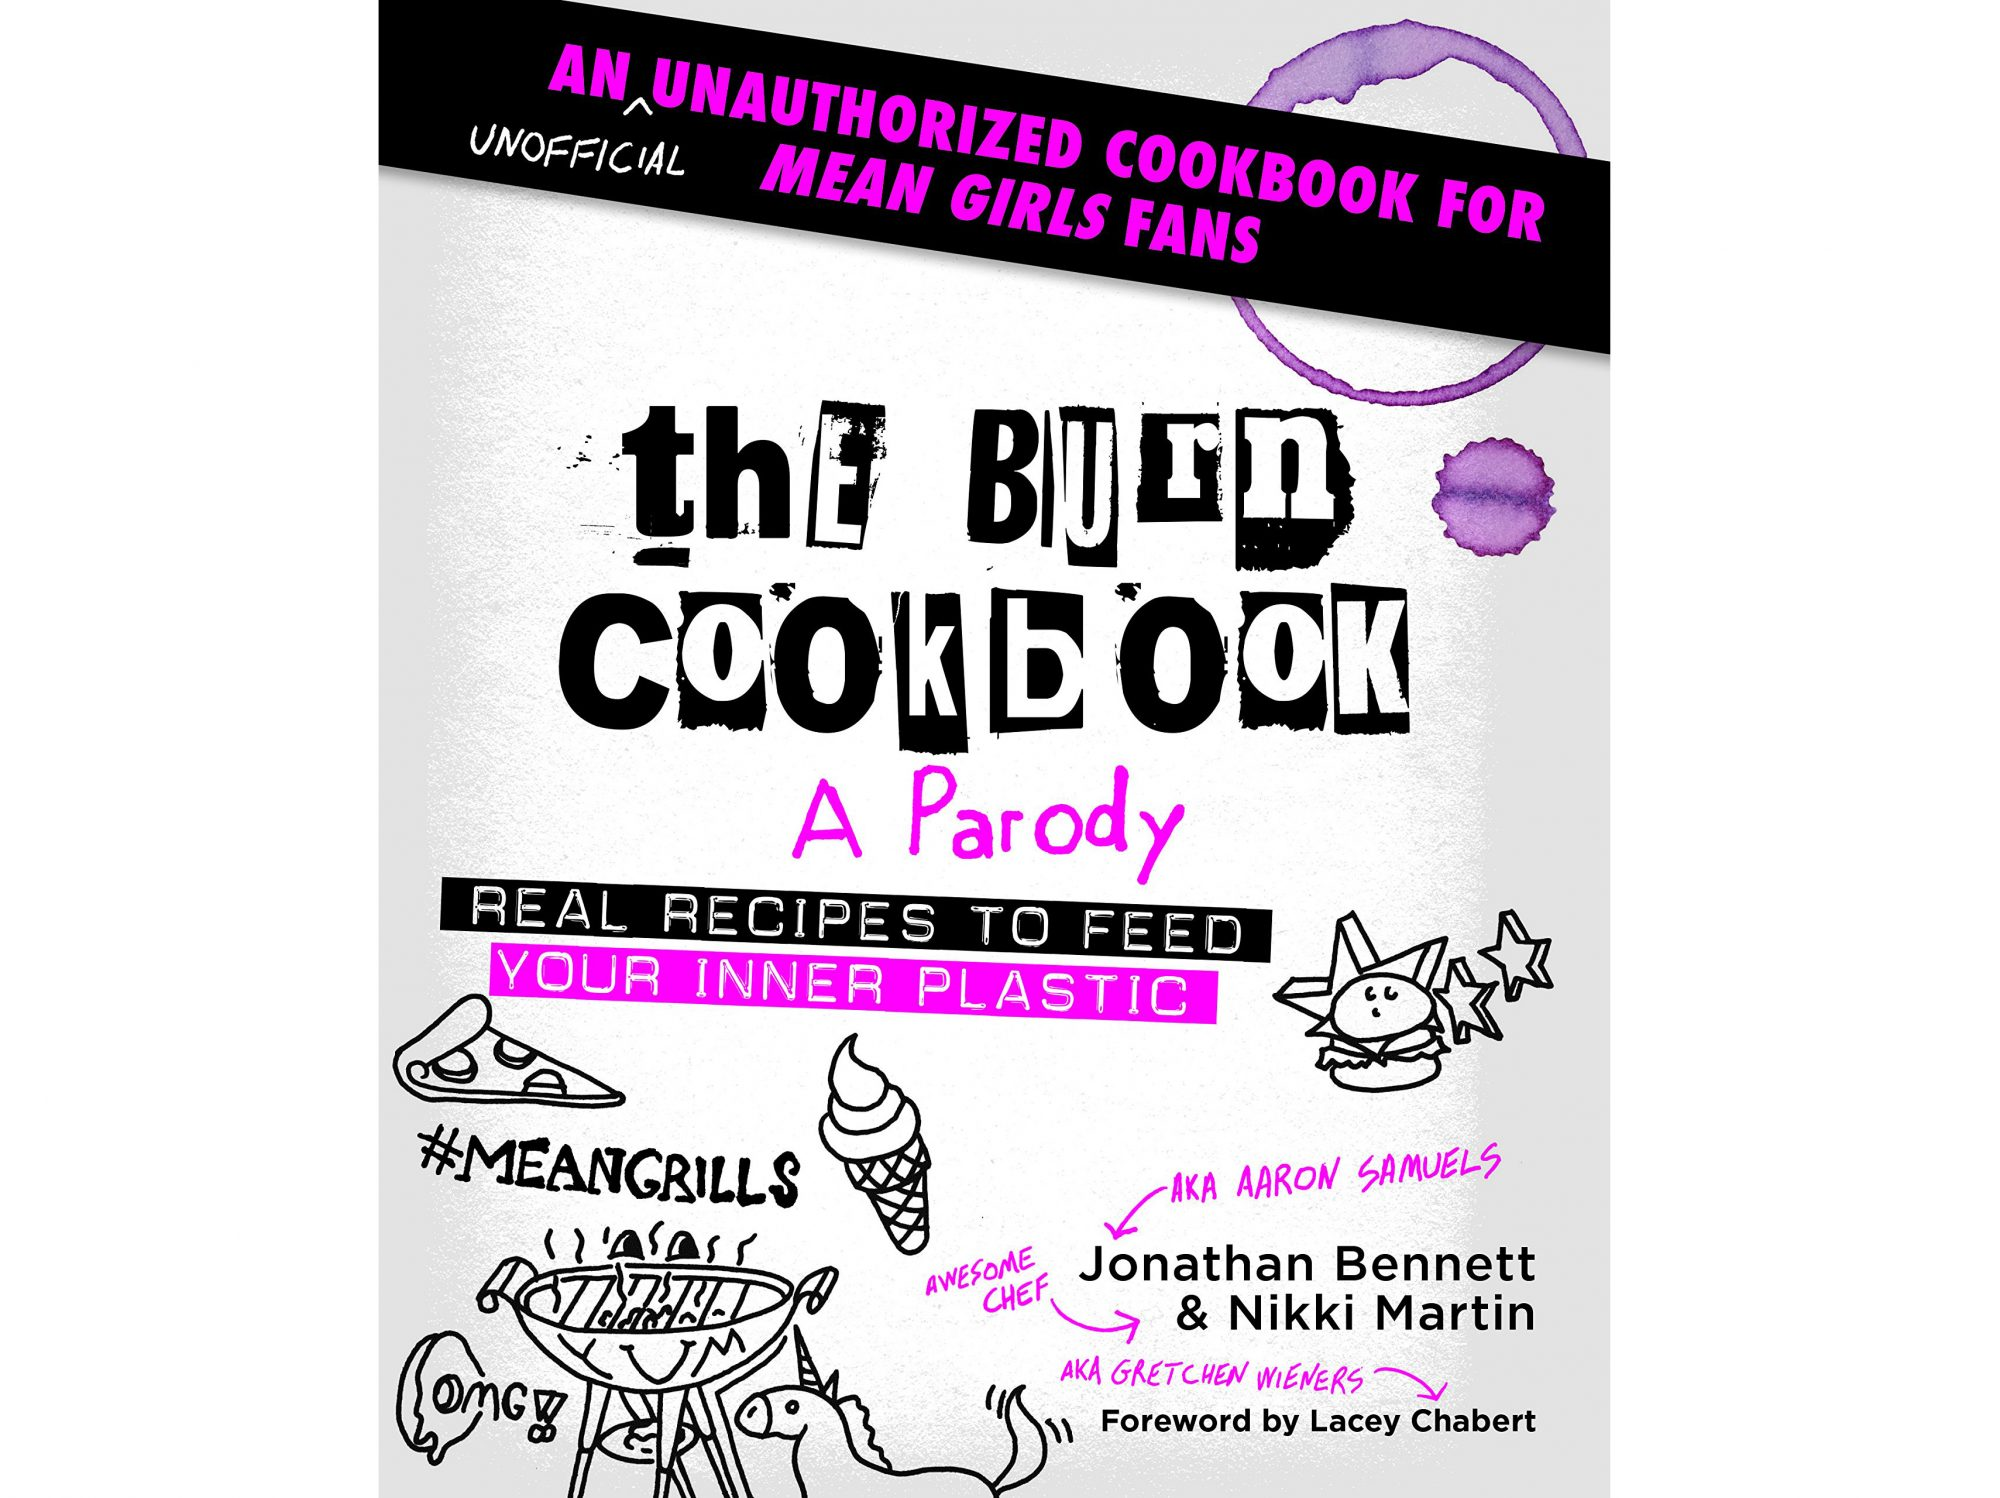 the burn cookbook.jpg